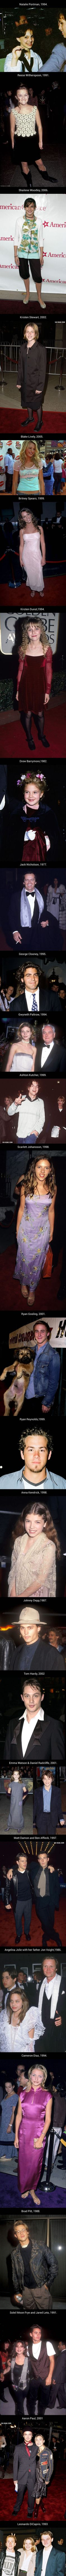 27 Celebrities' Very First Red Carpet Photos